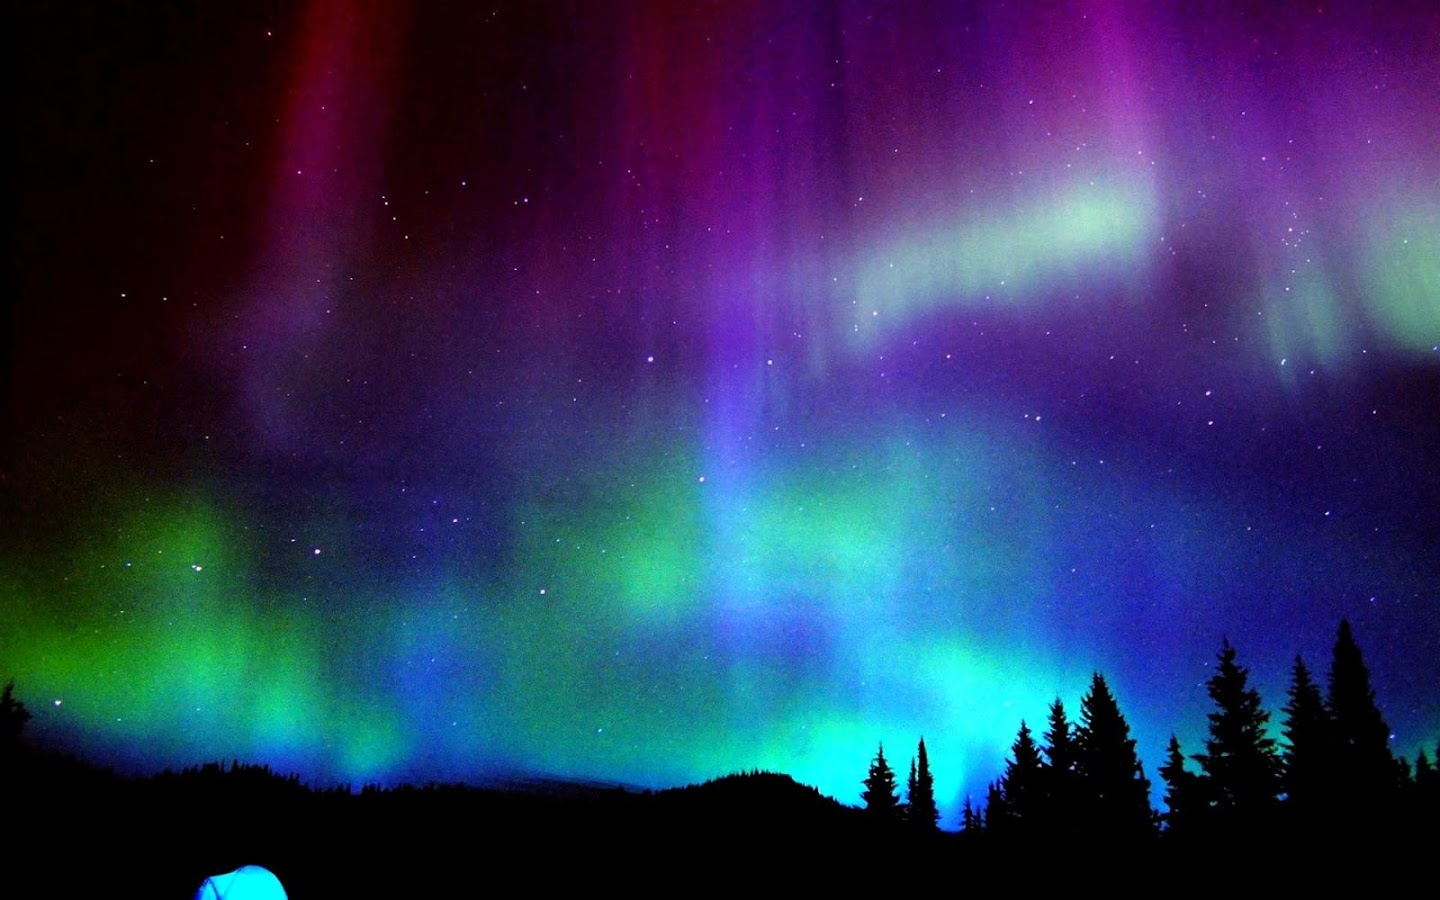 northern lights wallpaper hd 1.1.5 apk download - android